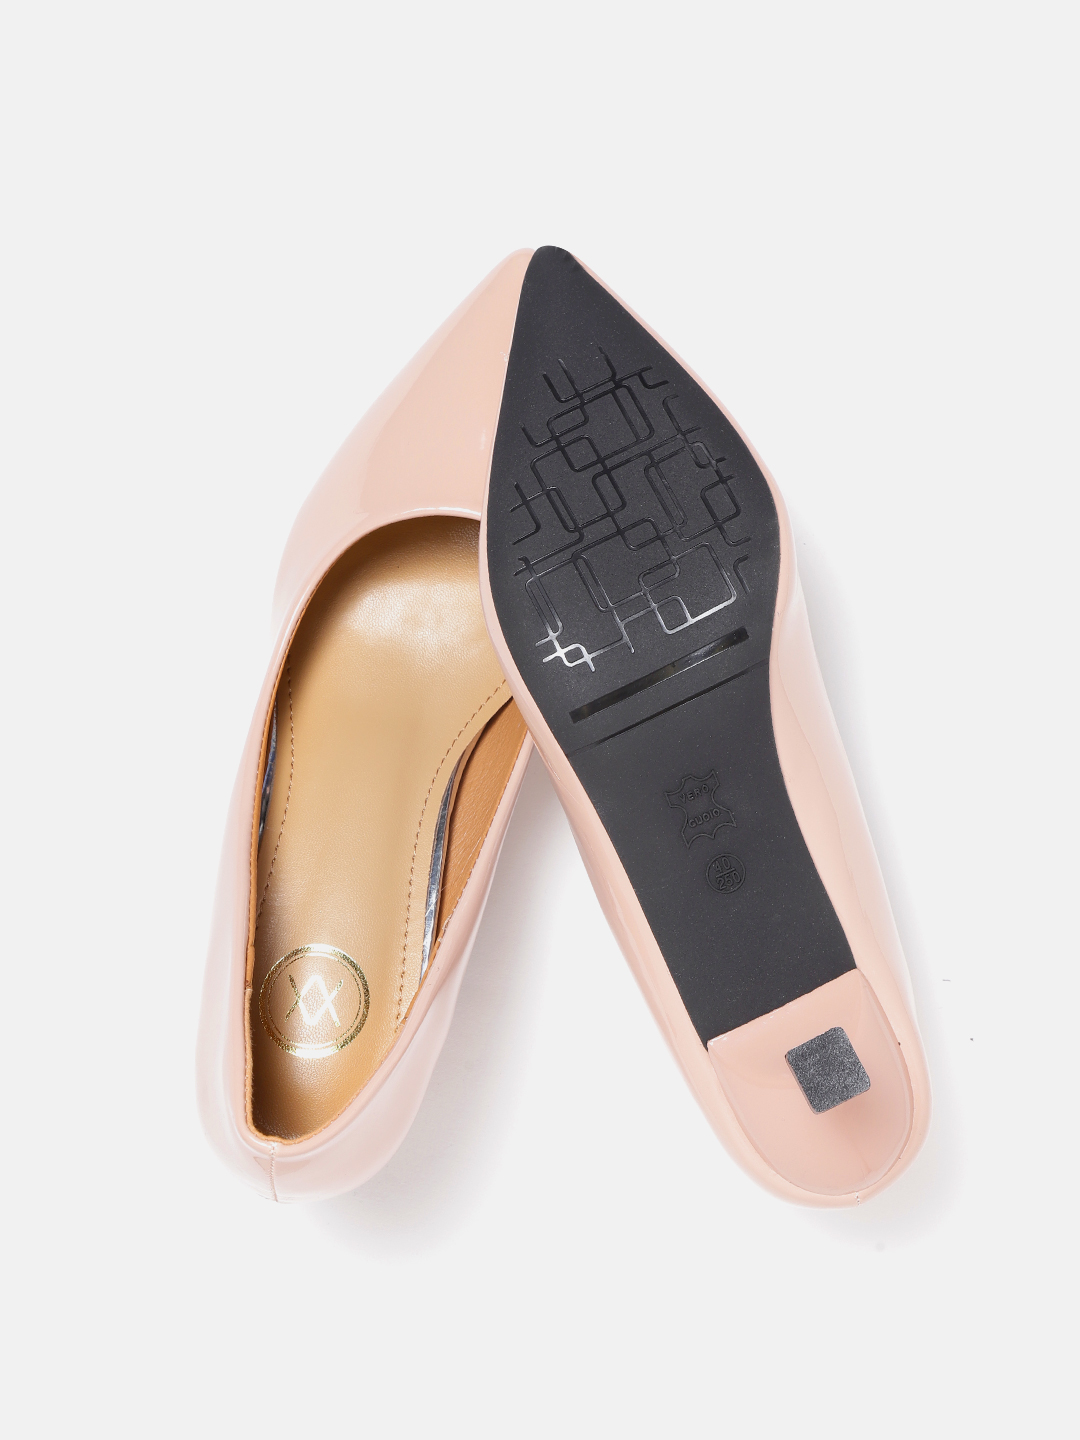 Heels and Wedges-Loving The Charm Pink Pumps4